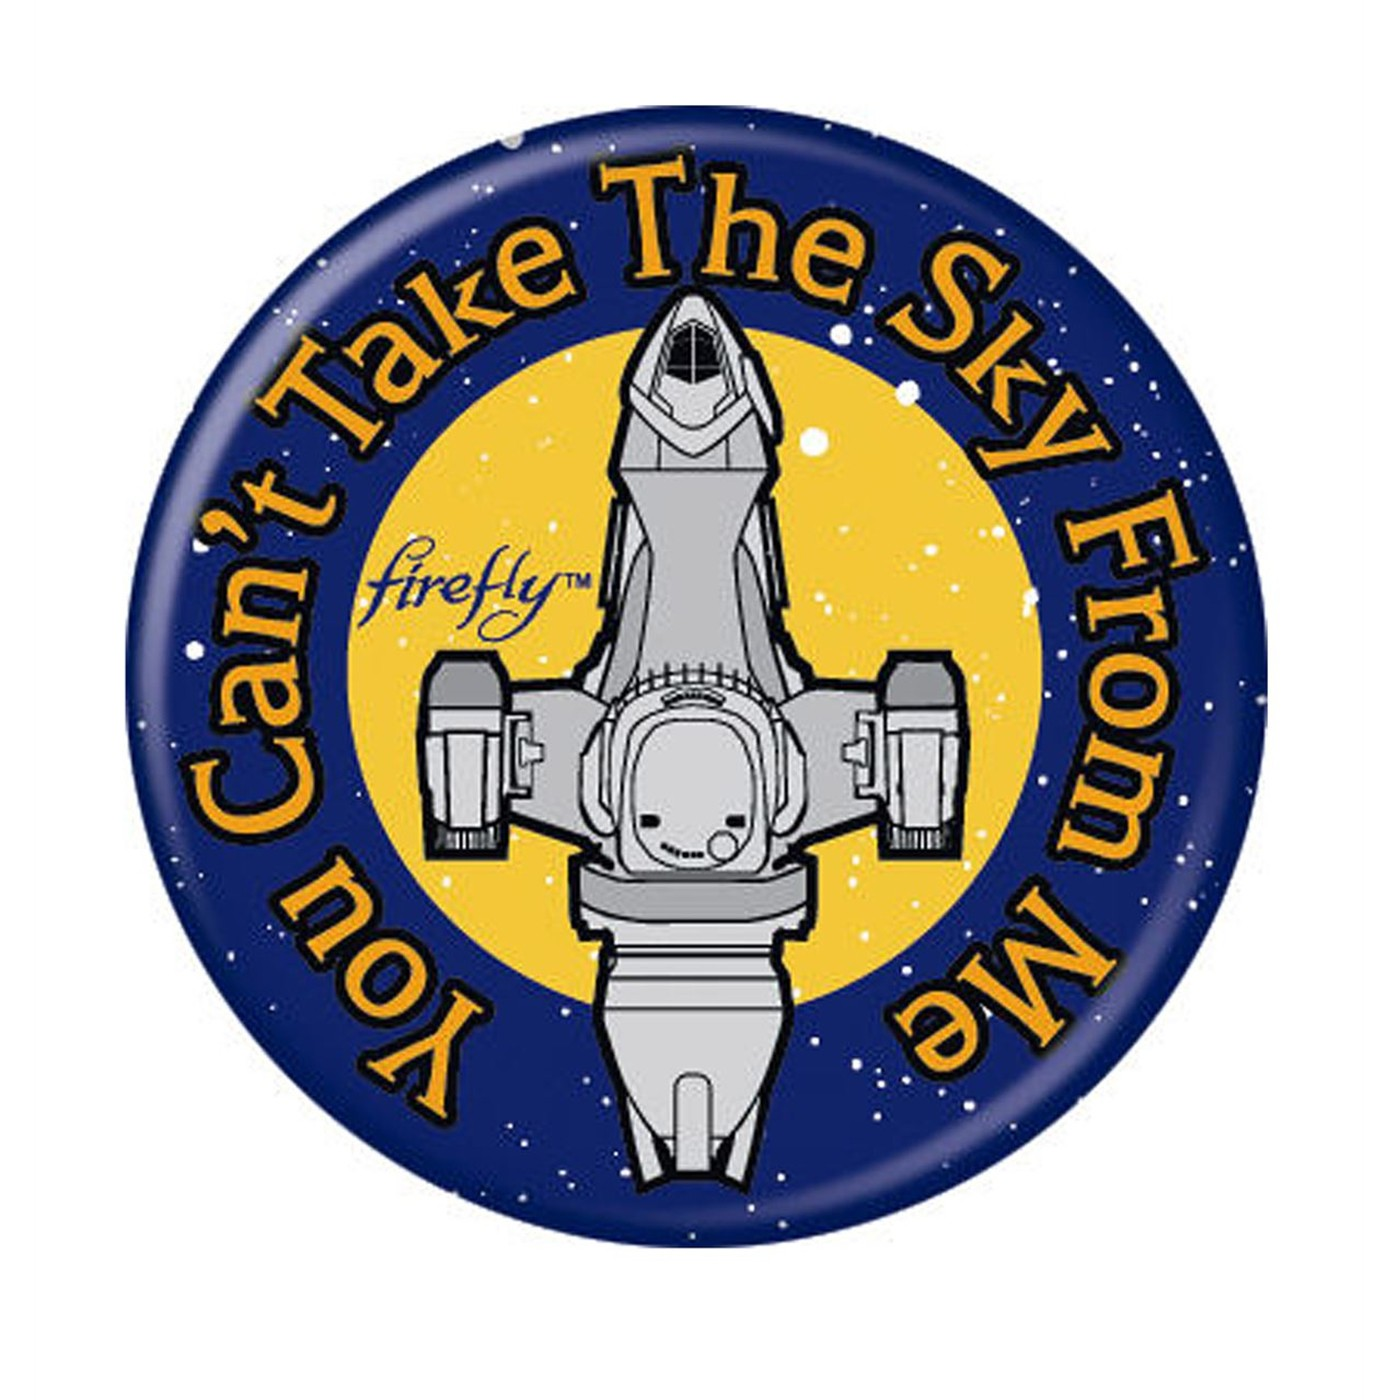 Firefly Serenity Aim Button